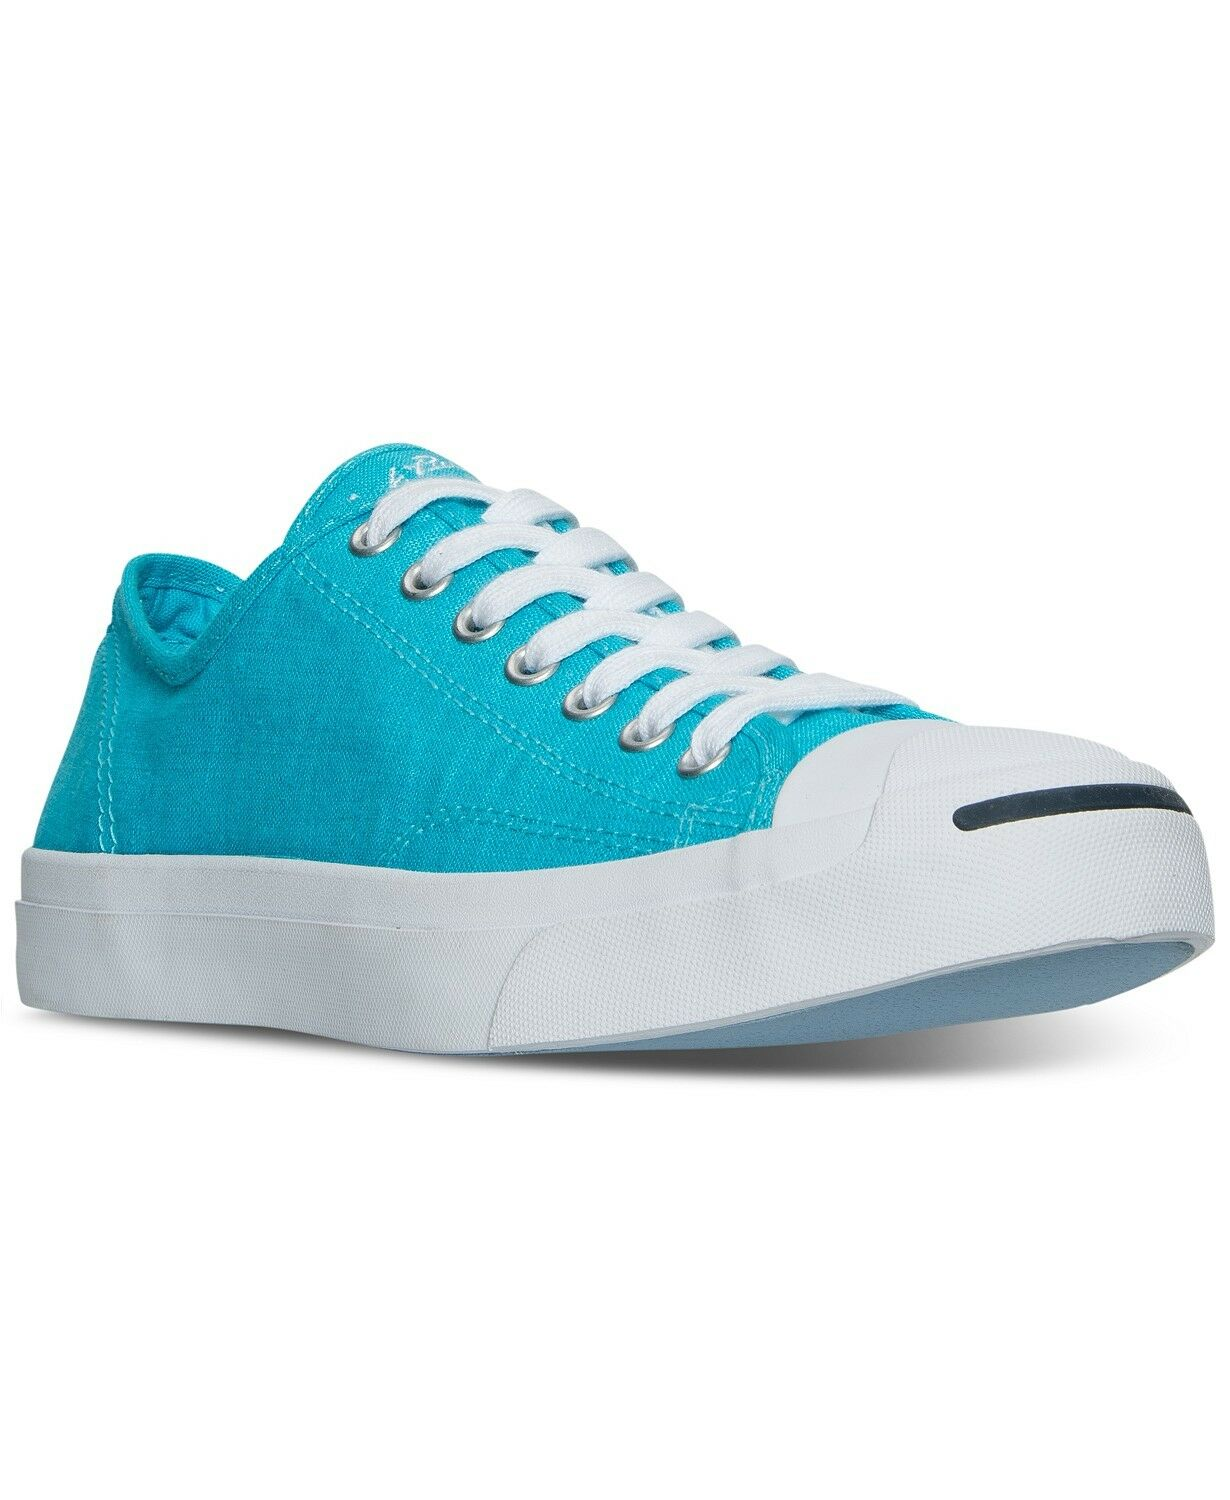 Converse Jack Purcell Open Textile Low Top Fresh Cyan bluee Unisex shoes 155635C